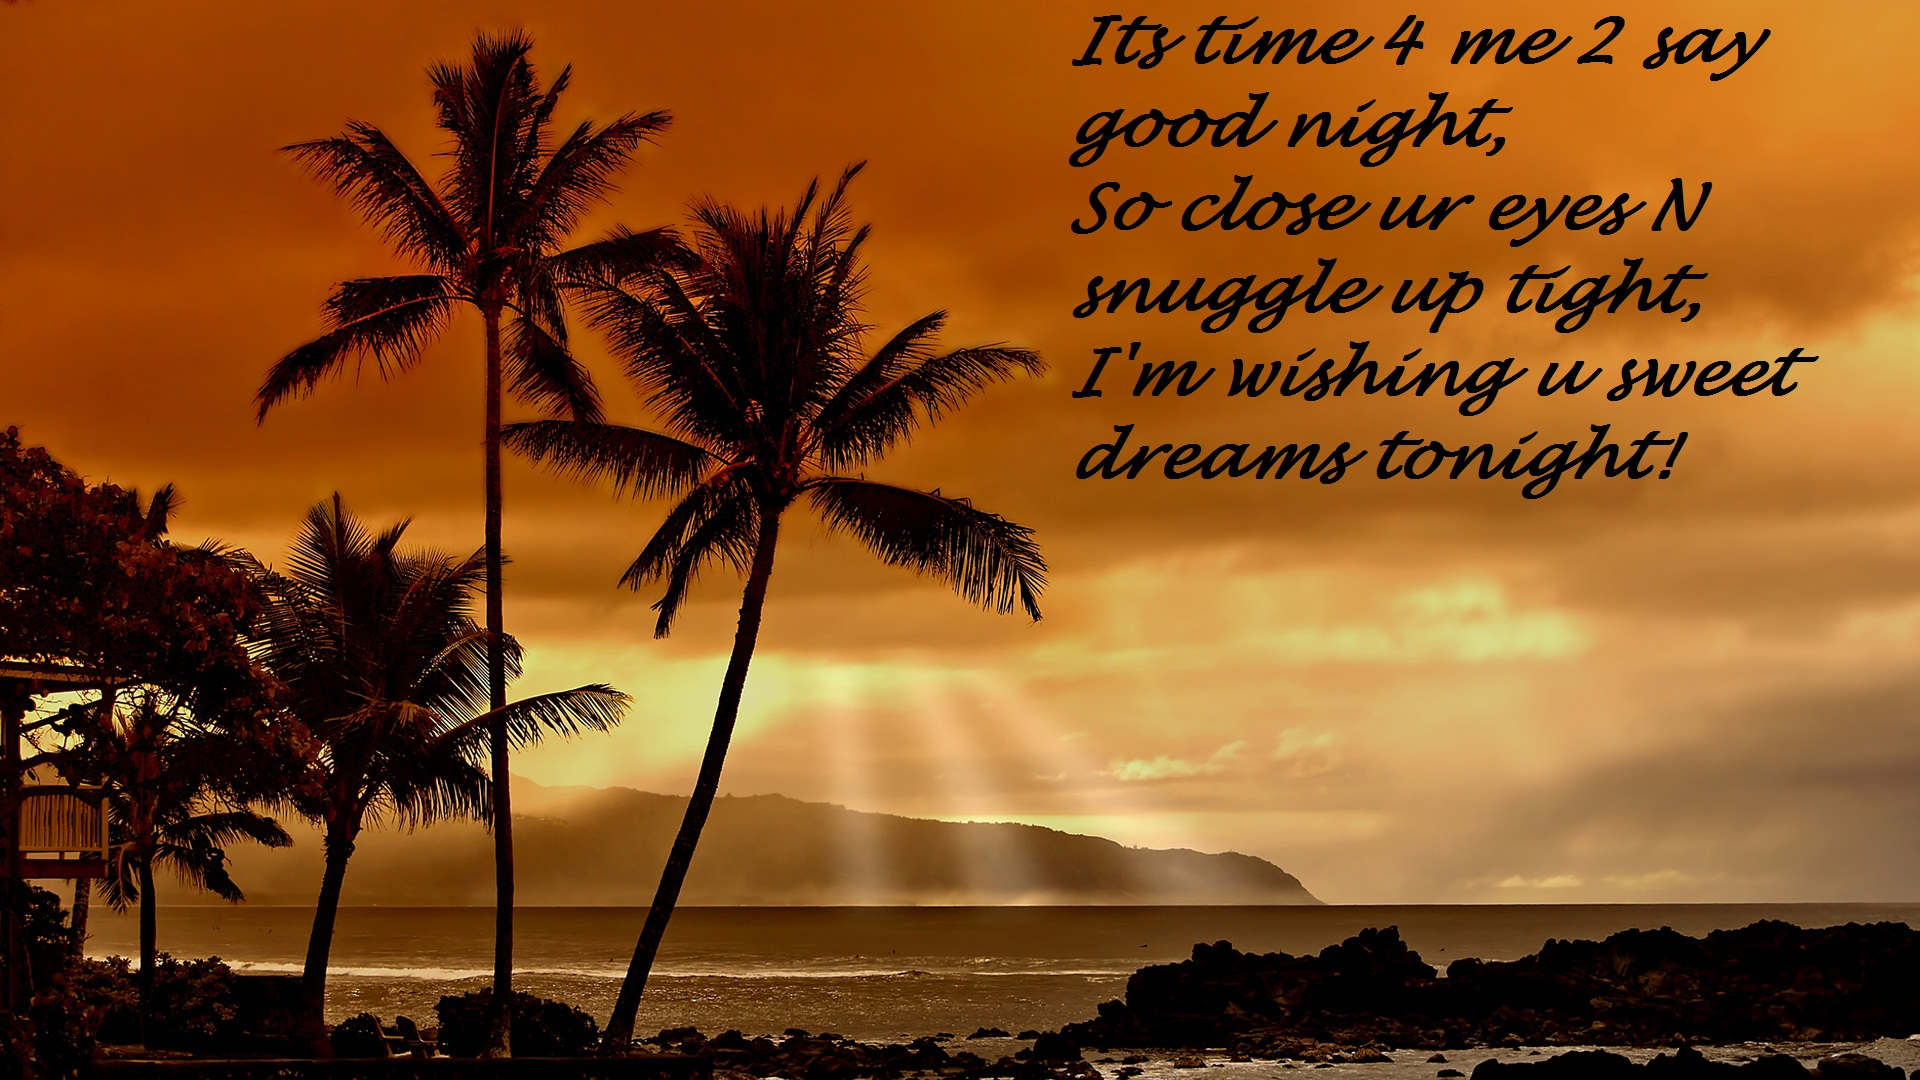 Good night quote wallpapers pictures images - Good night nature pic ...